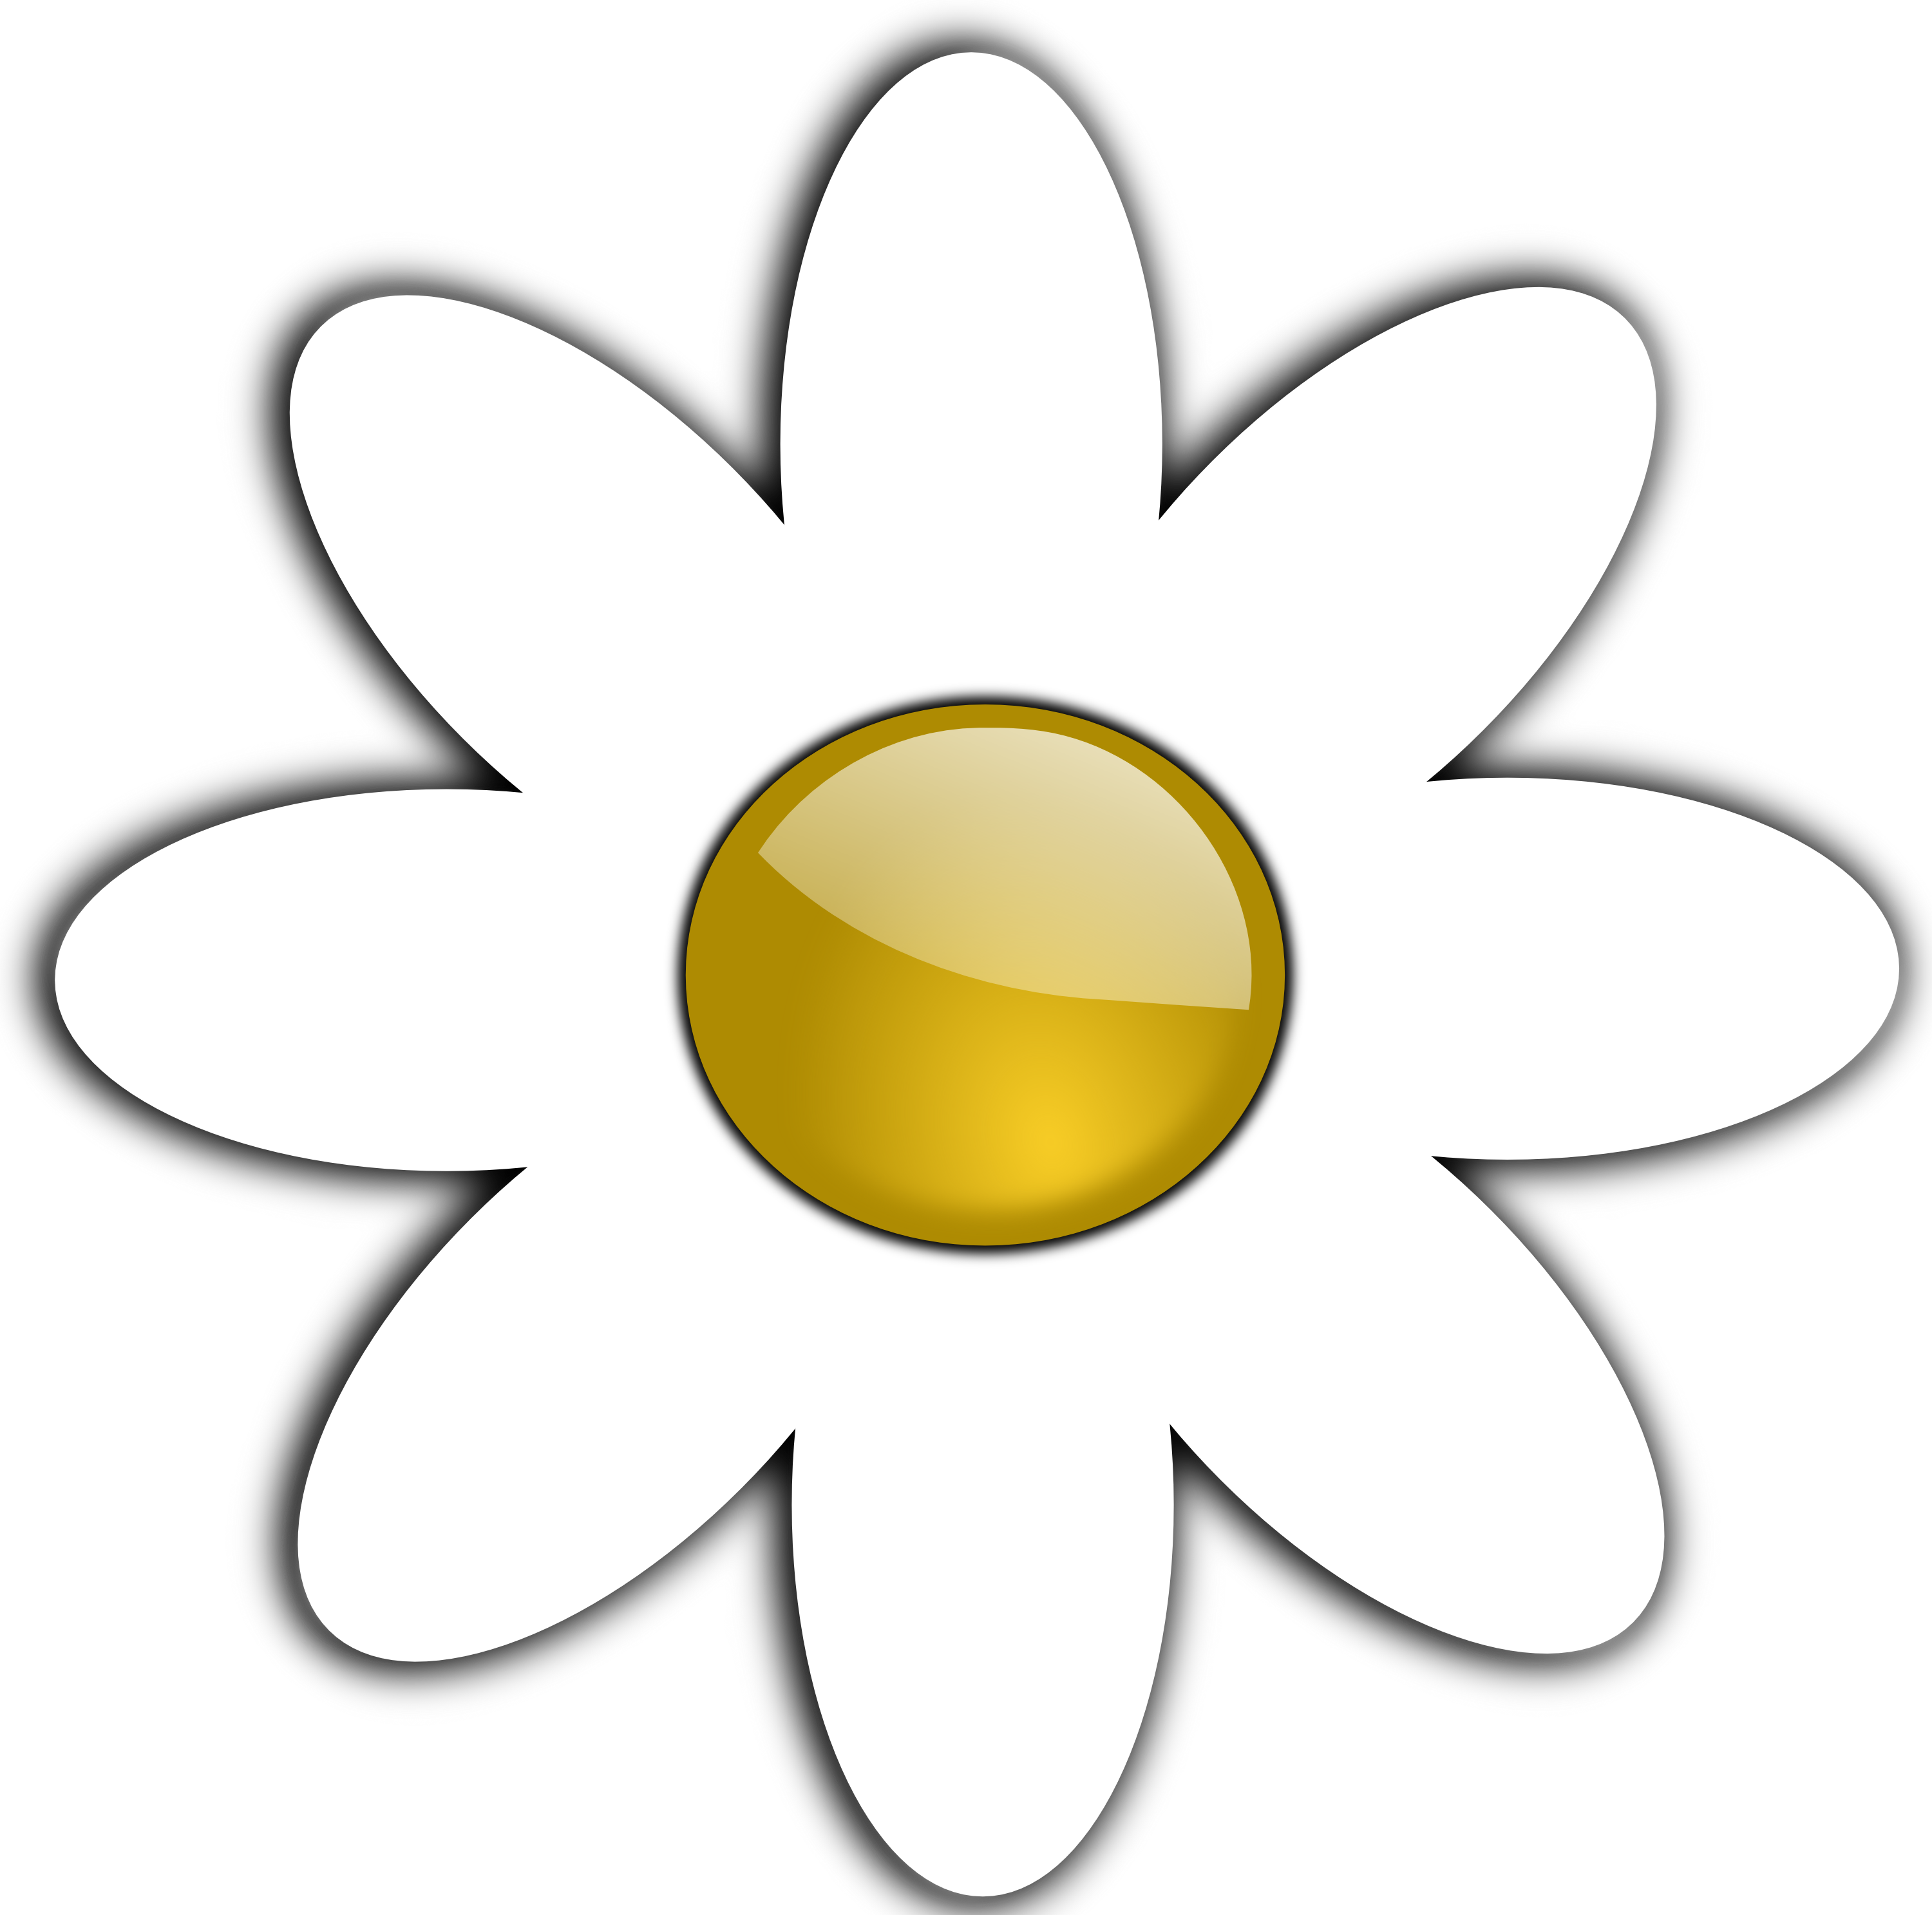 Daisy black and white. Five petal flower clipart